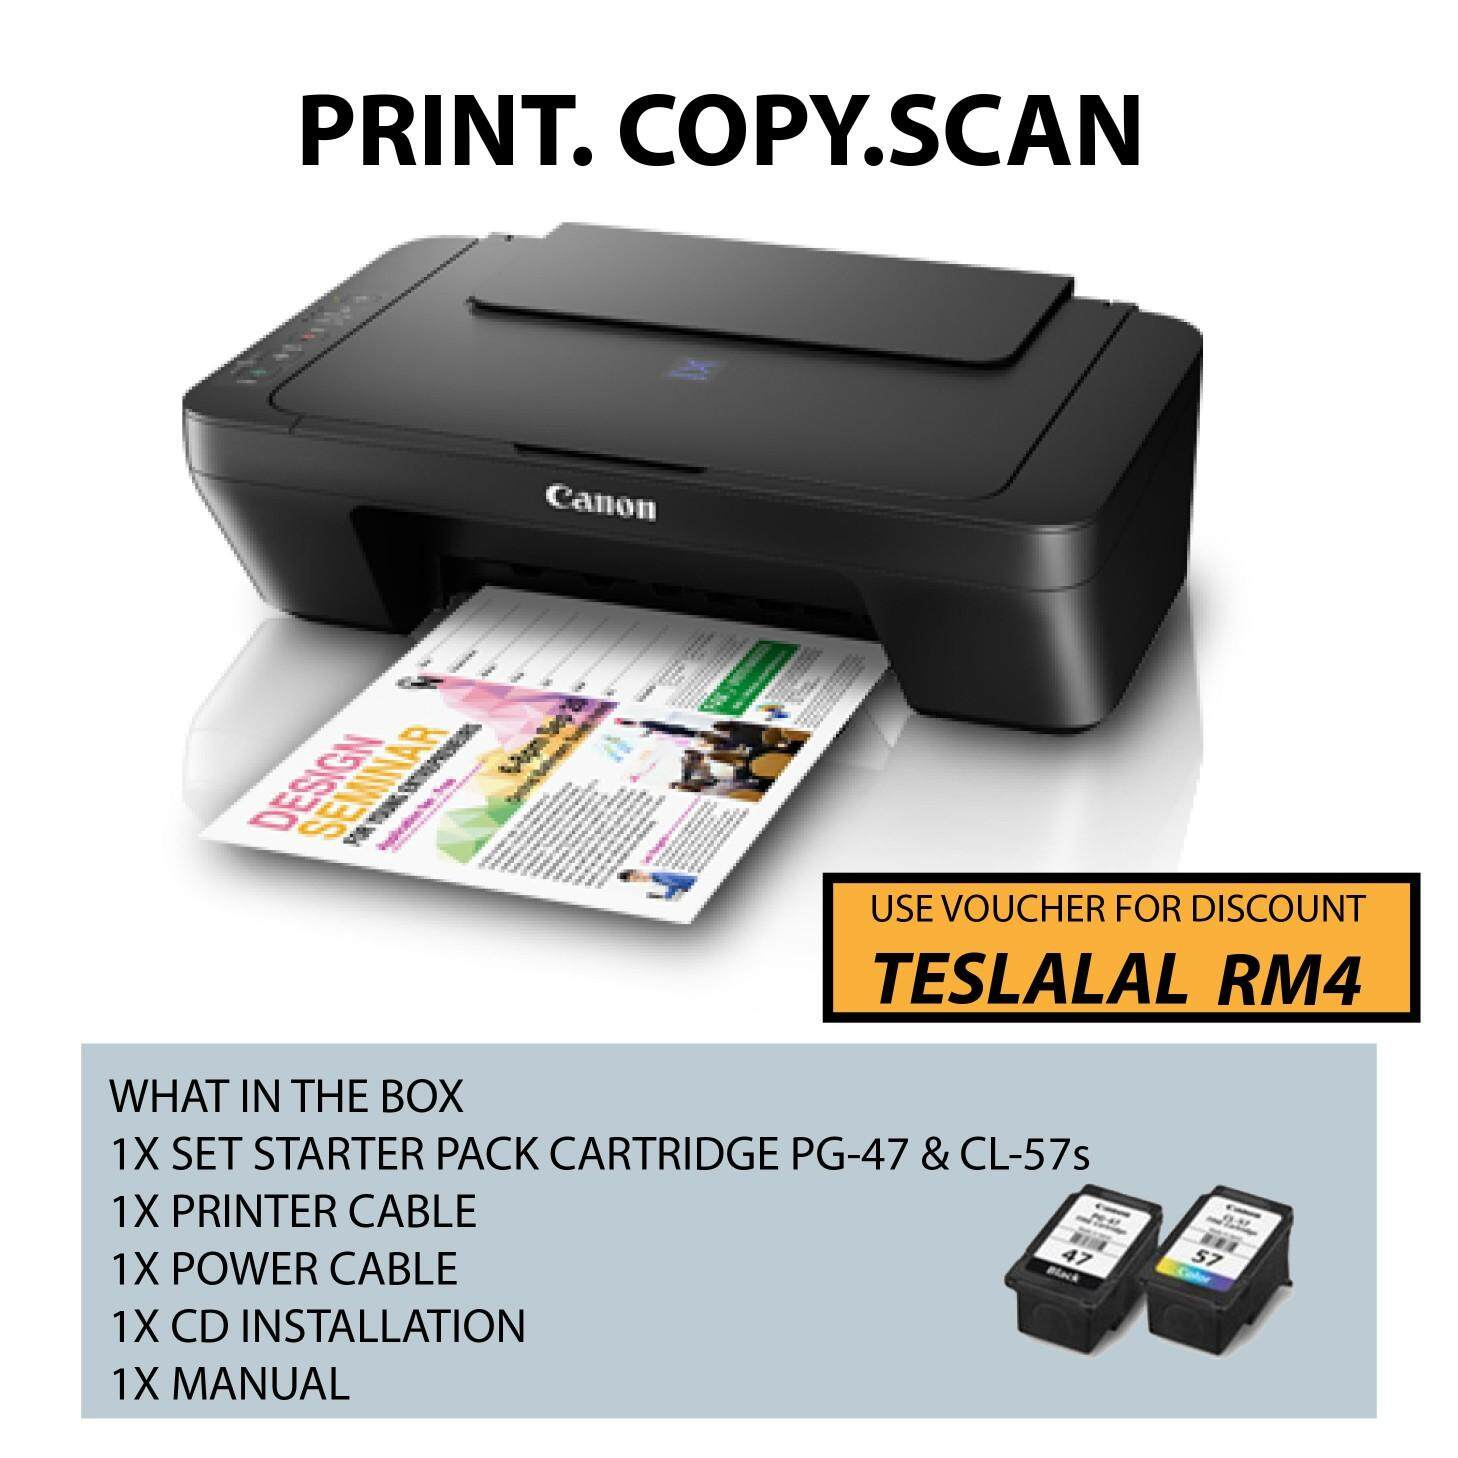 Sell Canon Mg3670 Pixma Cheapest Best Quality My Store Catridge Pg 47 Black Original 100 Myr 178 E410 Ink